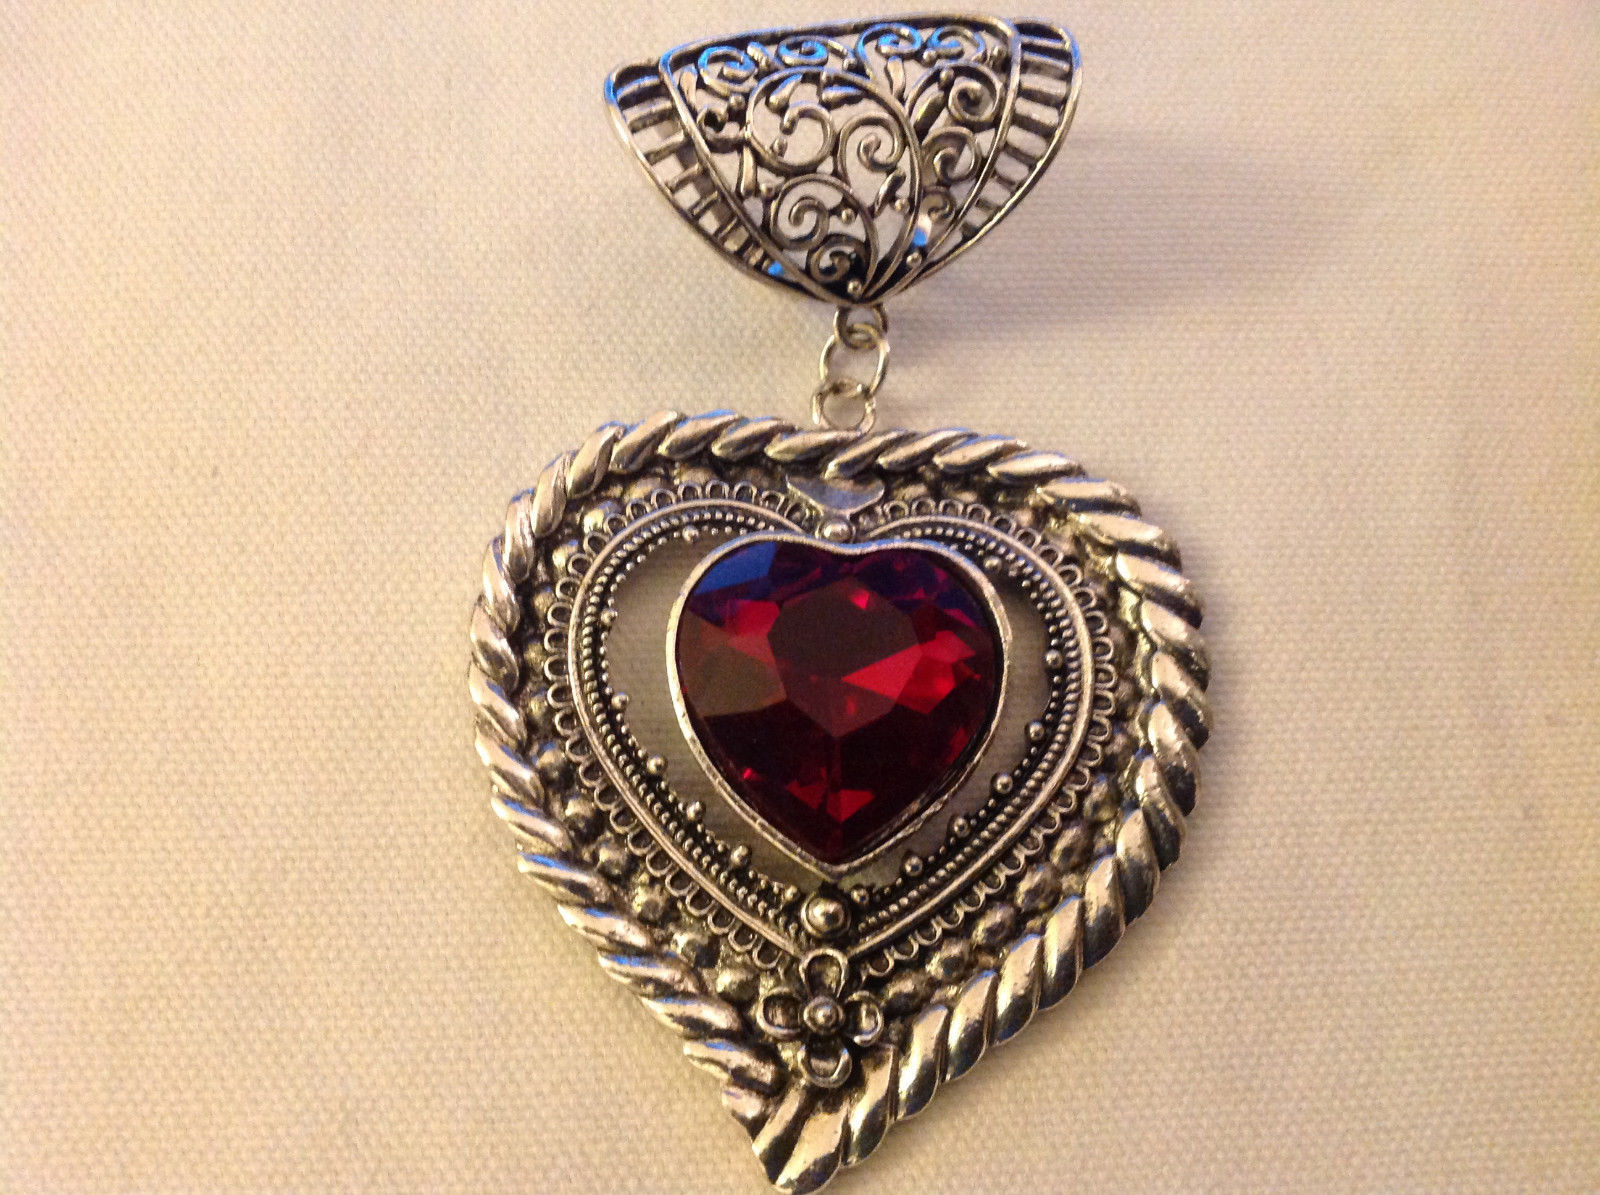 Scarf Pendant Silver Tone Heart Shaped with Dark Red Heart Shaped Crystal